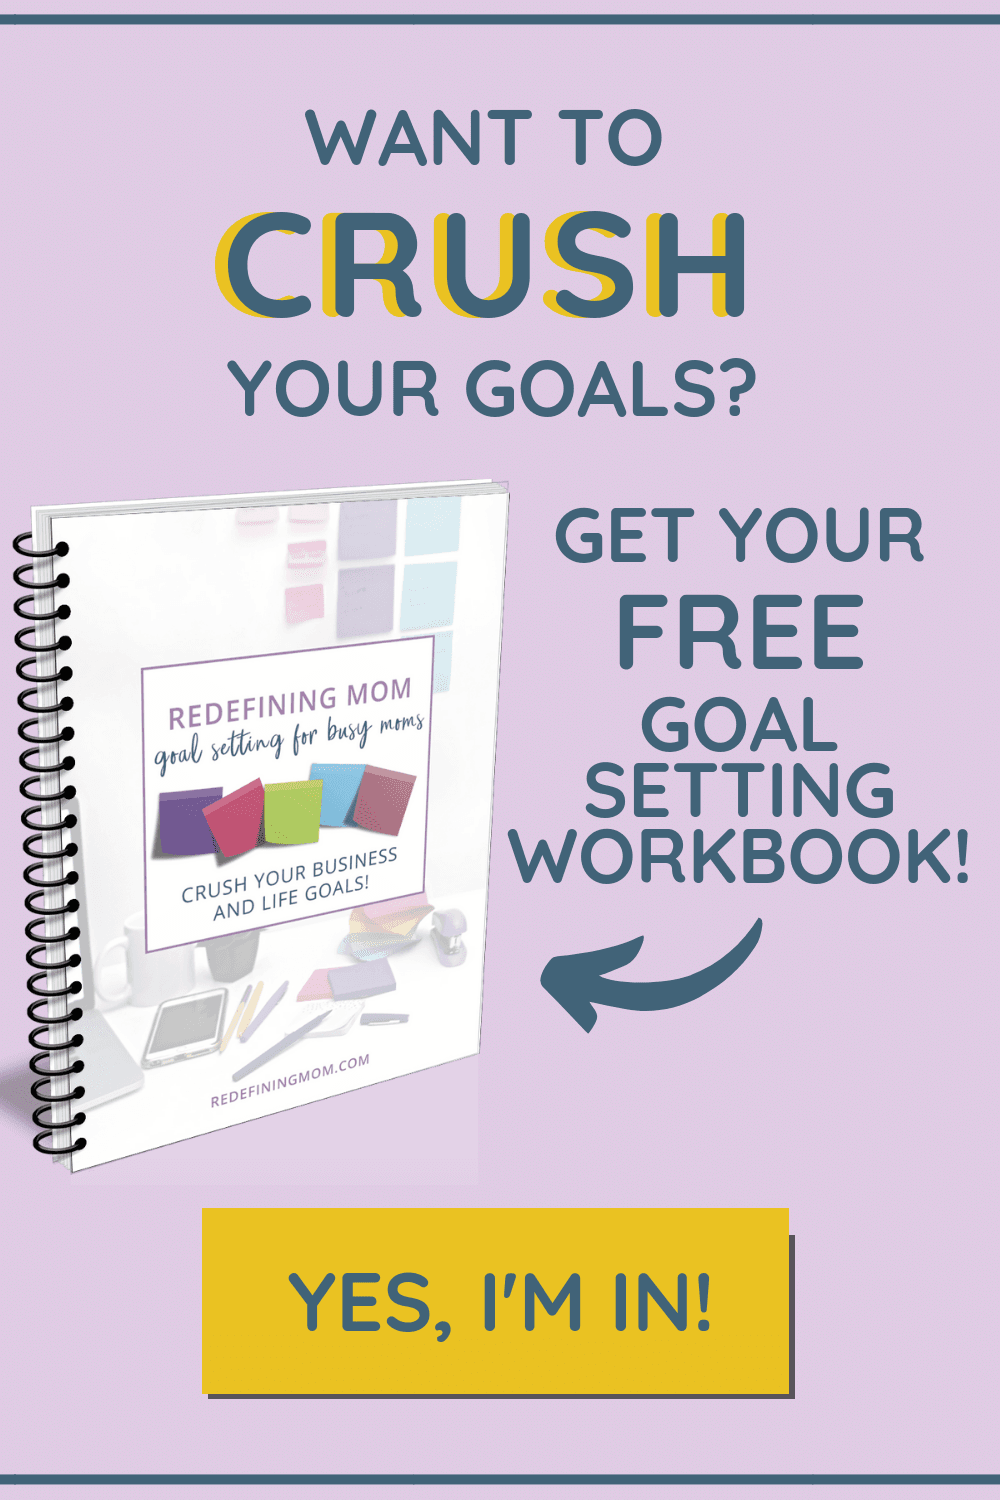 I am so glad I found this goal setting workbook! I was struggling so much with prioritizing my time between work and home. I always thought, who has time for goal planning?! These free goal setting printable worksheets are the best! Enter your name and email for instant access. #goalplanning #goalsetting